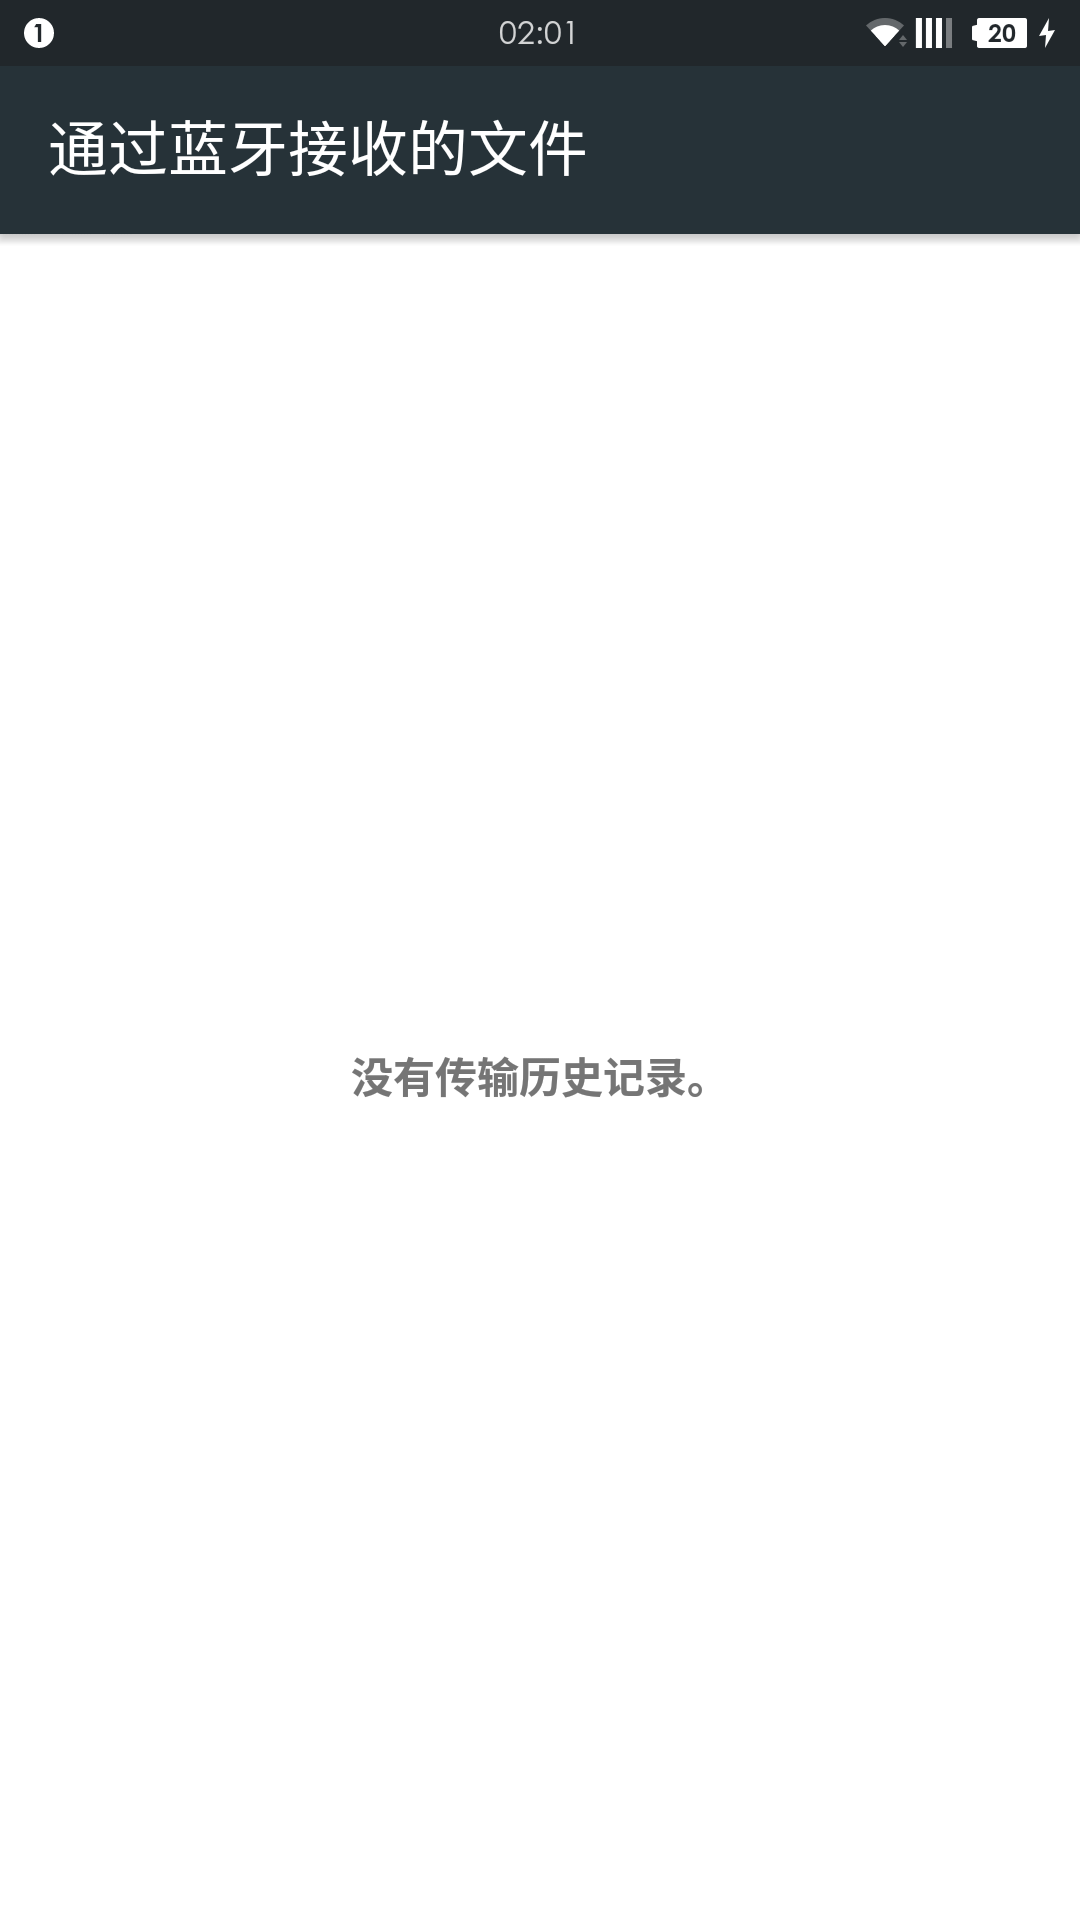 Screenshot_2015-11-29-02-01-37.png